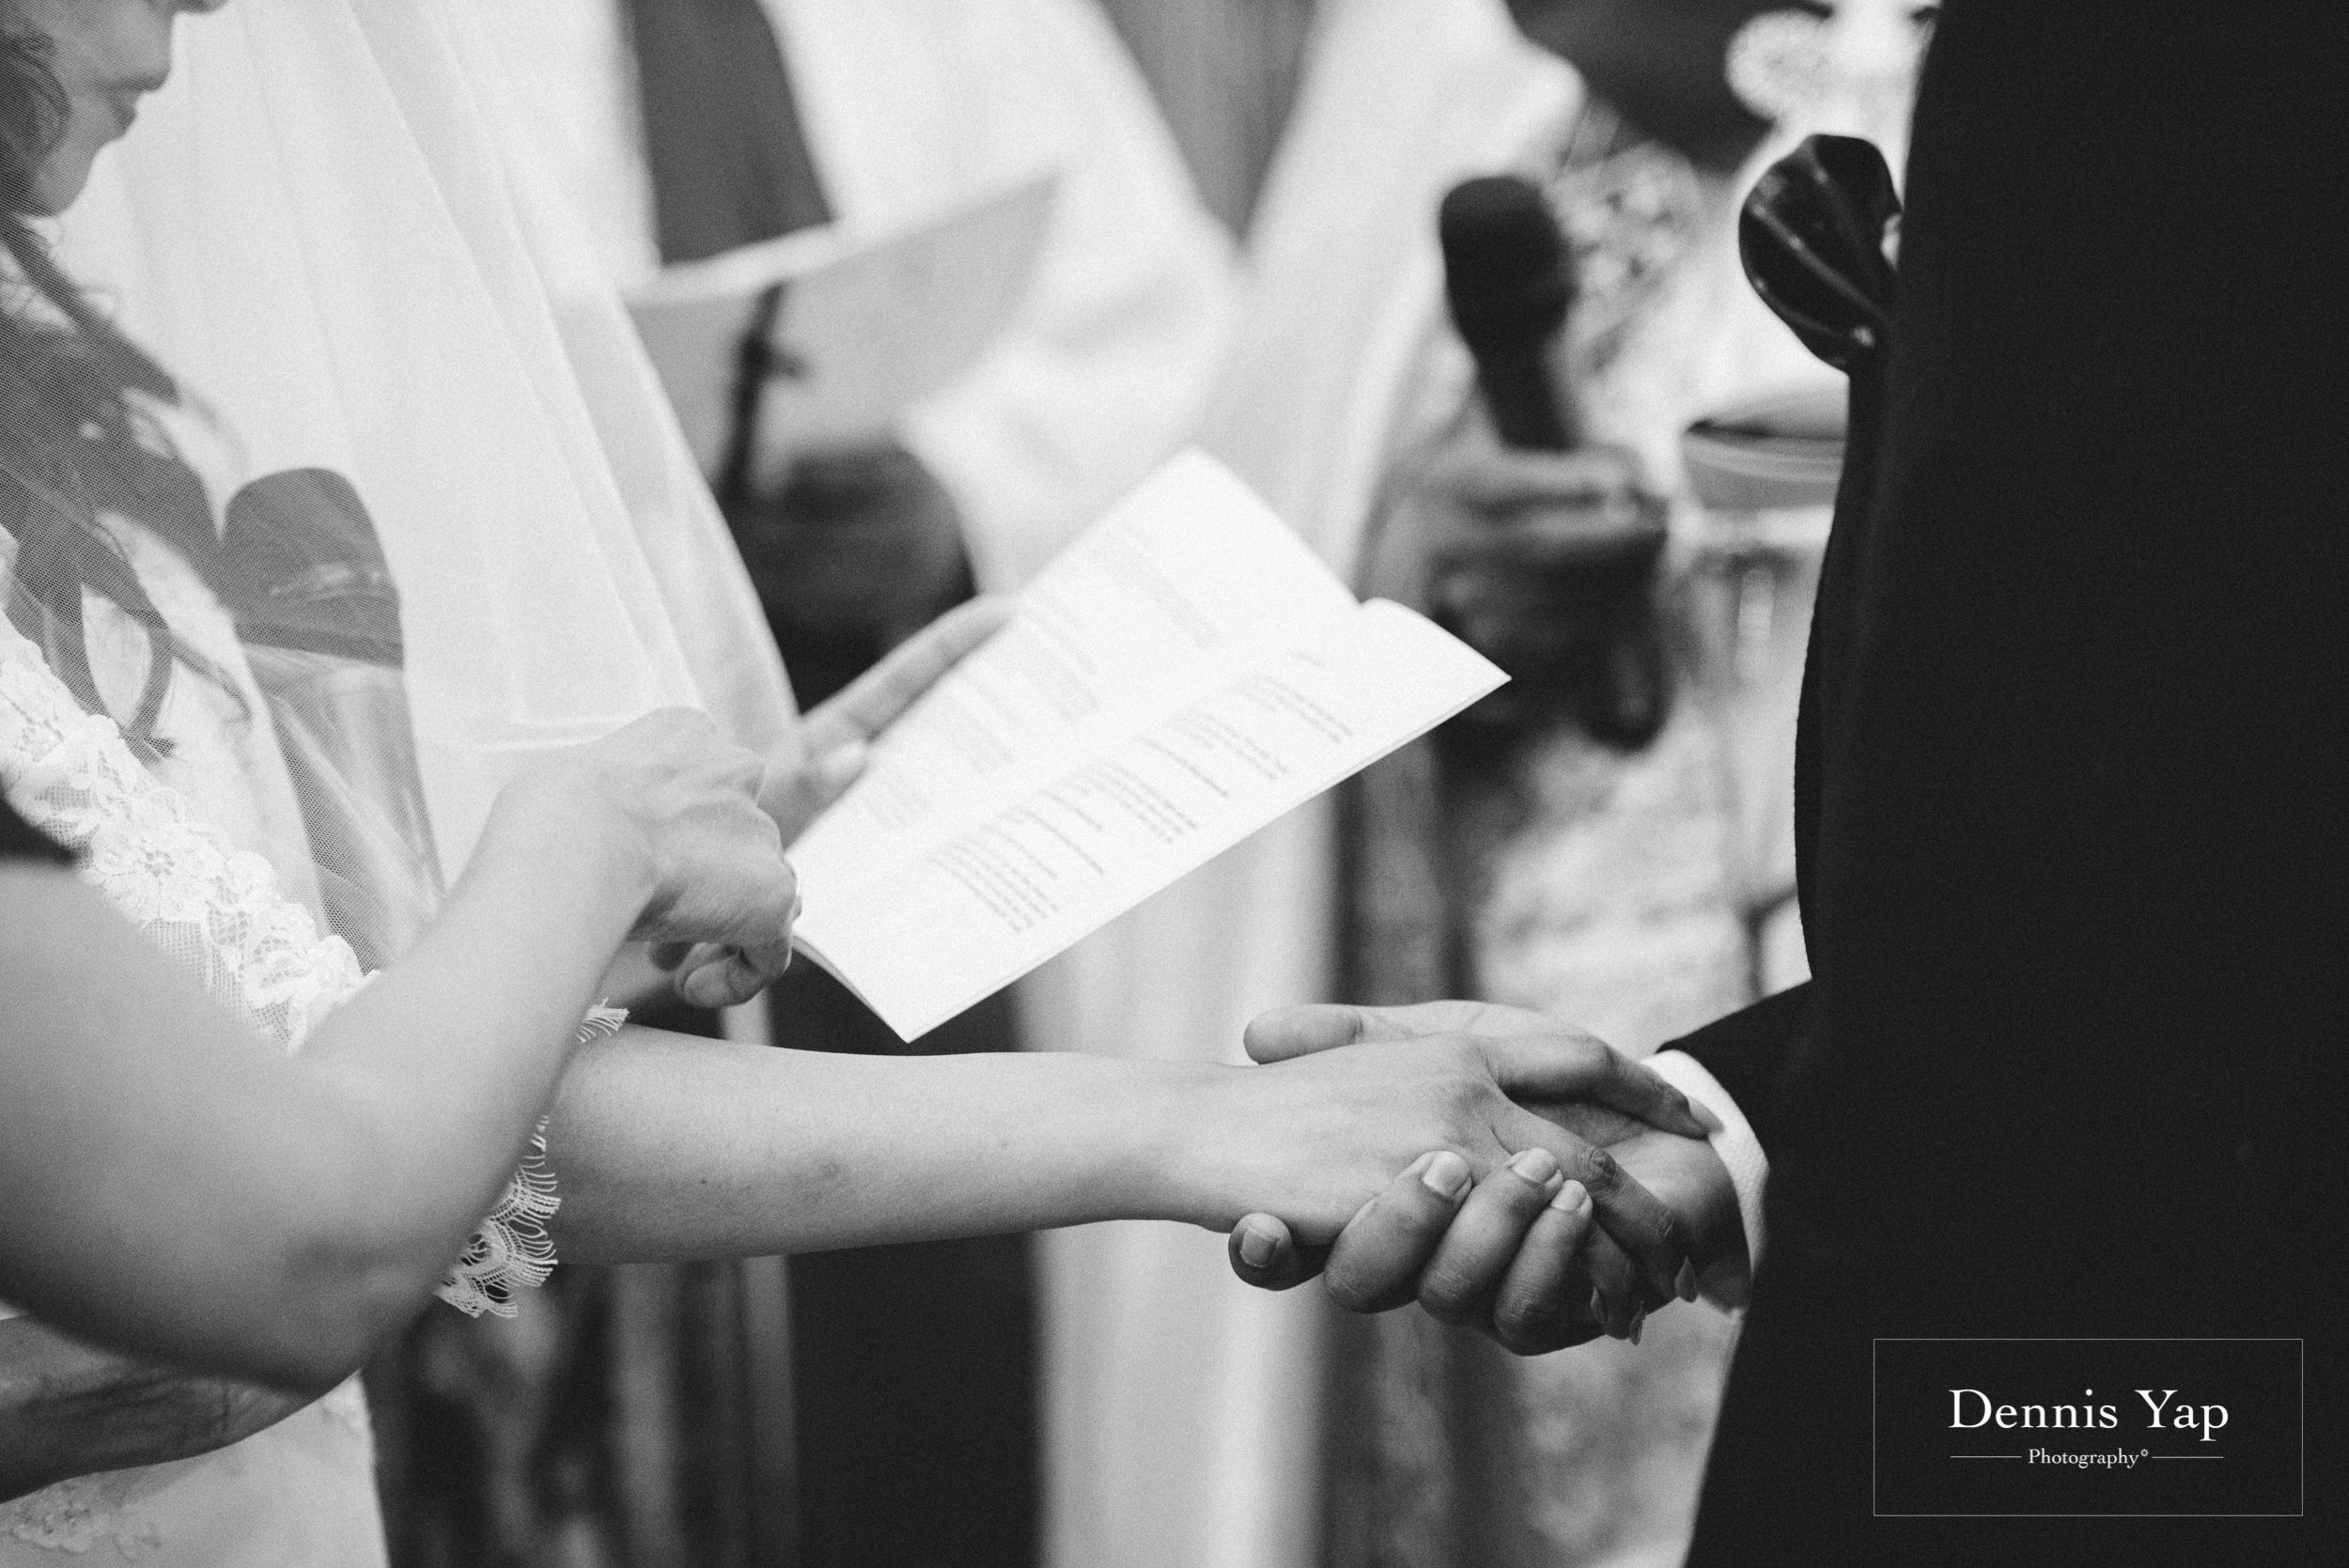 arun angela church wedding st peter bangsar dennis yap photography-18.jpg